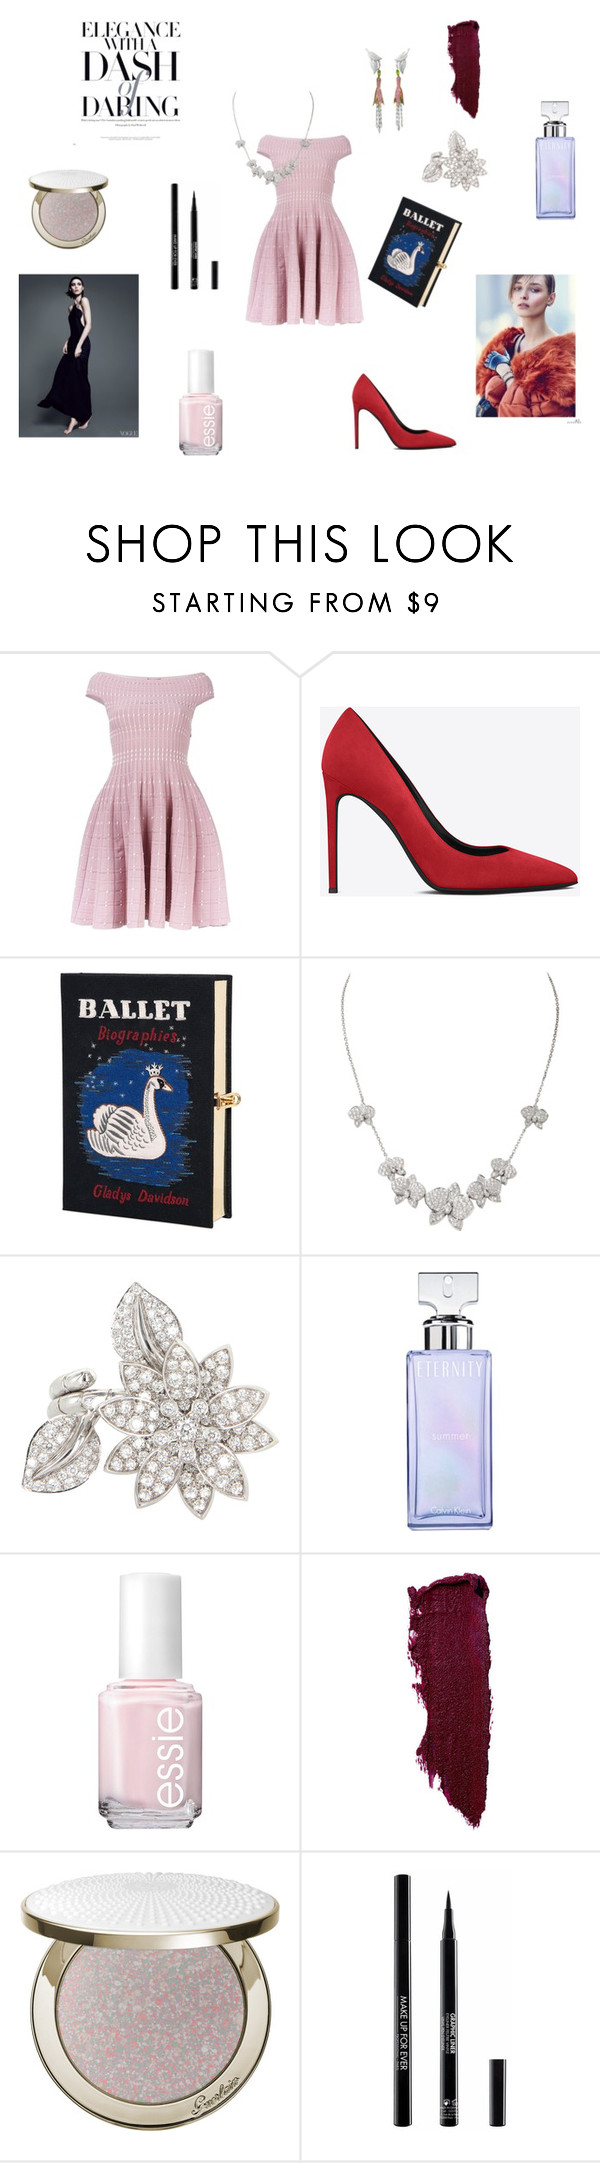 """""""Ballet"""" by maria-chamourlidou ❤ liked on Polyvore featuring Alexander McQueen, Yves Saint Laurent, Olympia Le-Tan, Van Cleef & Arpels, Calvin Klein, Essie, Lipstick Queen, Guerlain, MAKE UP FOR EVER and women's clothing"""